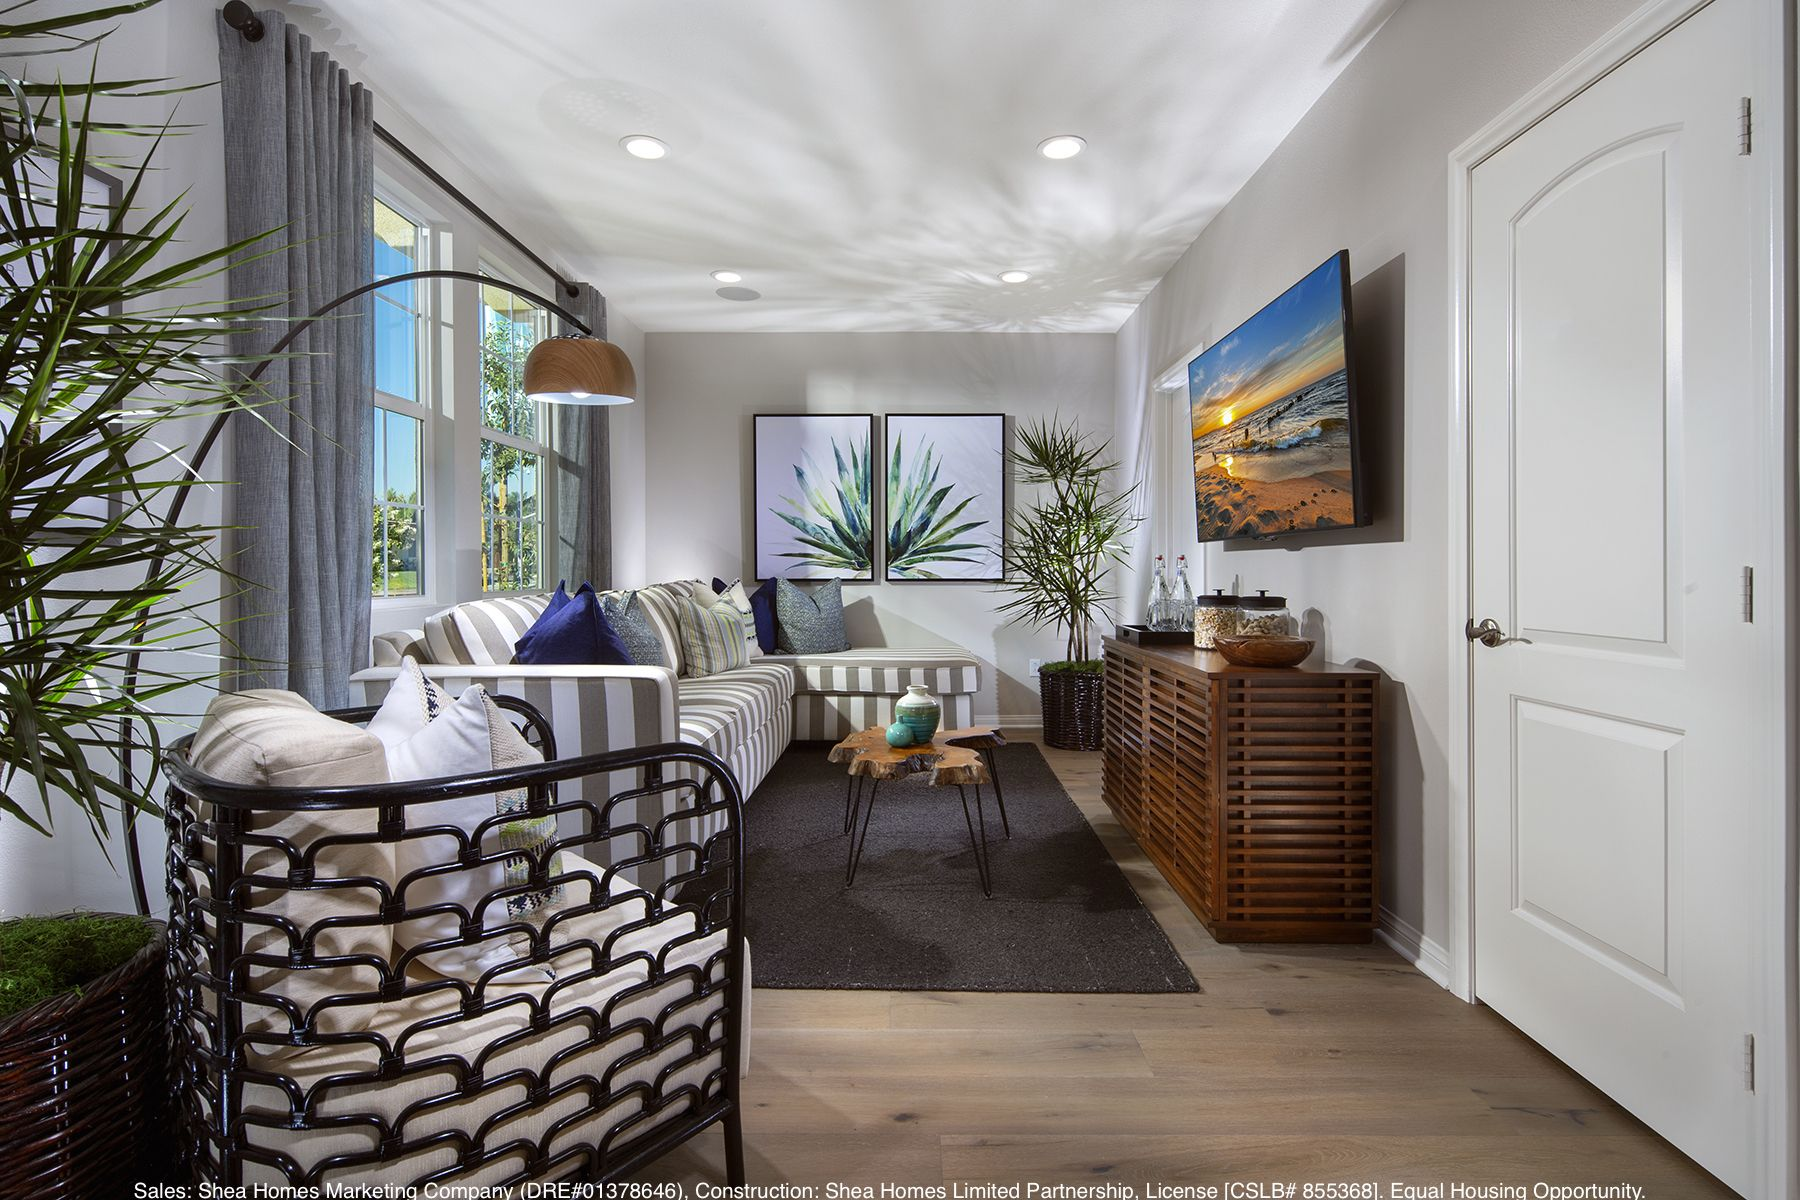 Experience Smart and Connected Living at Skylark in La Habra, CA